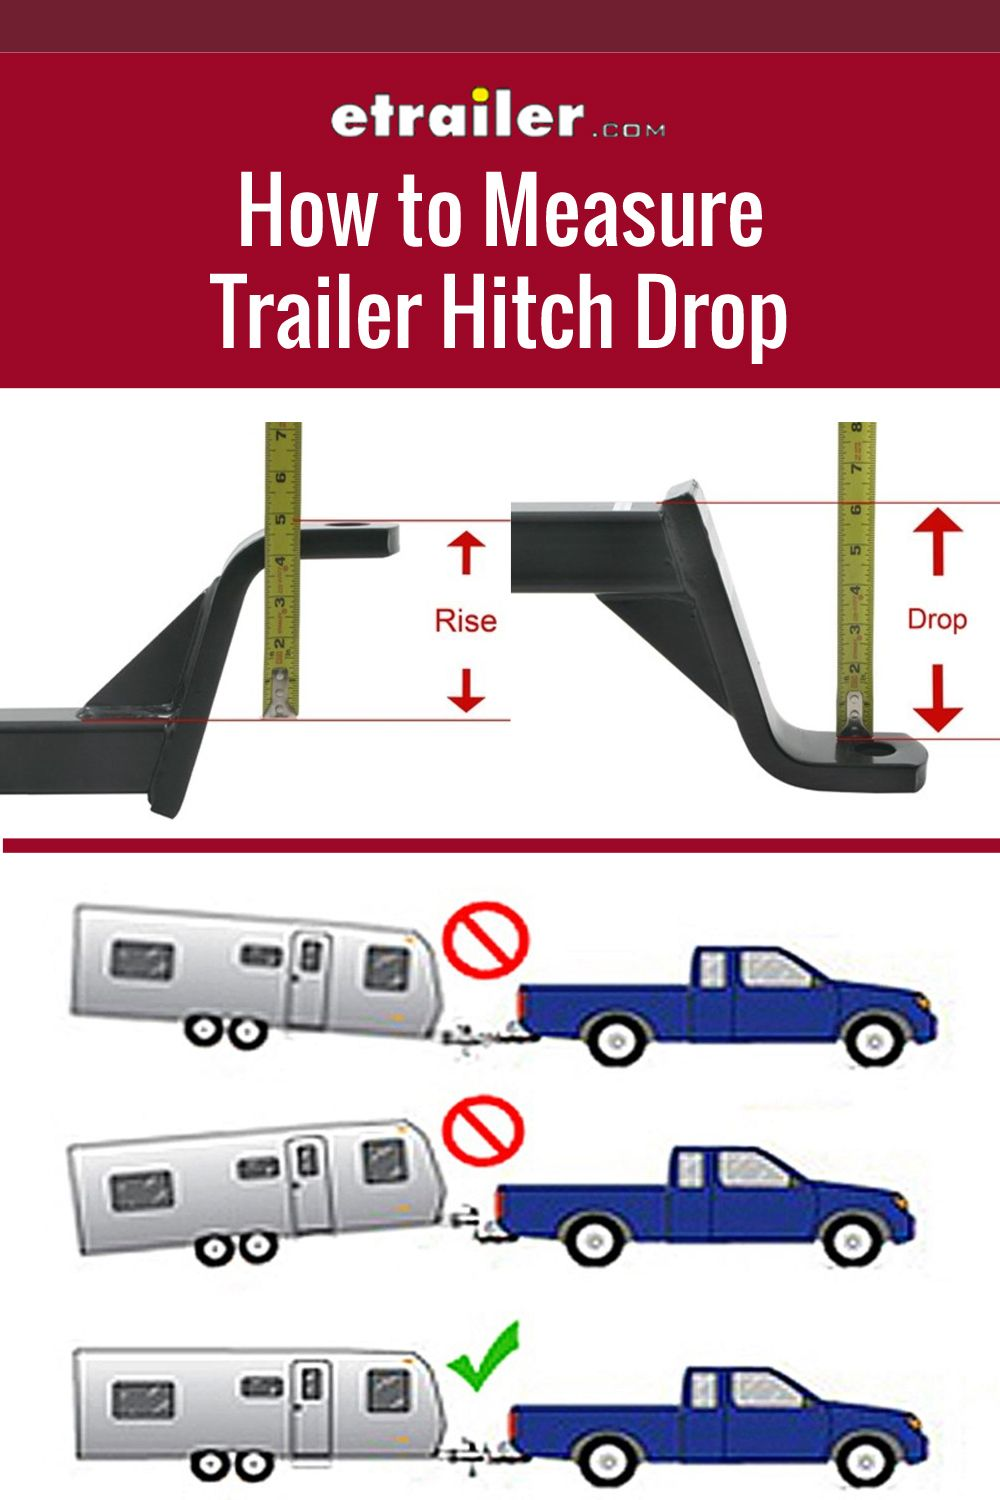 How To Measure Trailer Hitch Drop Towing Trailer Travel Trailer Camping Trailer